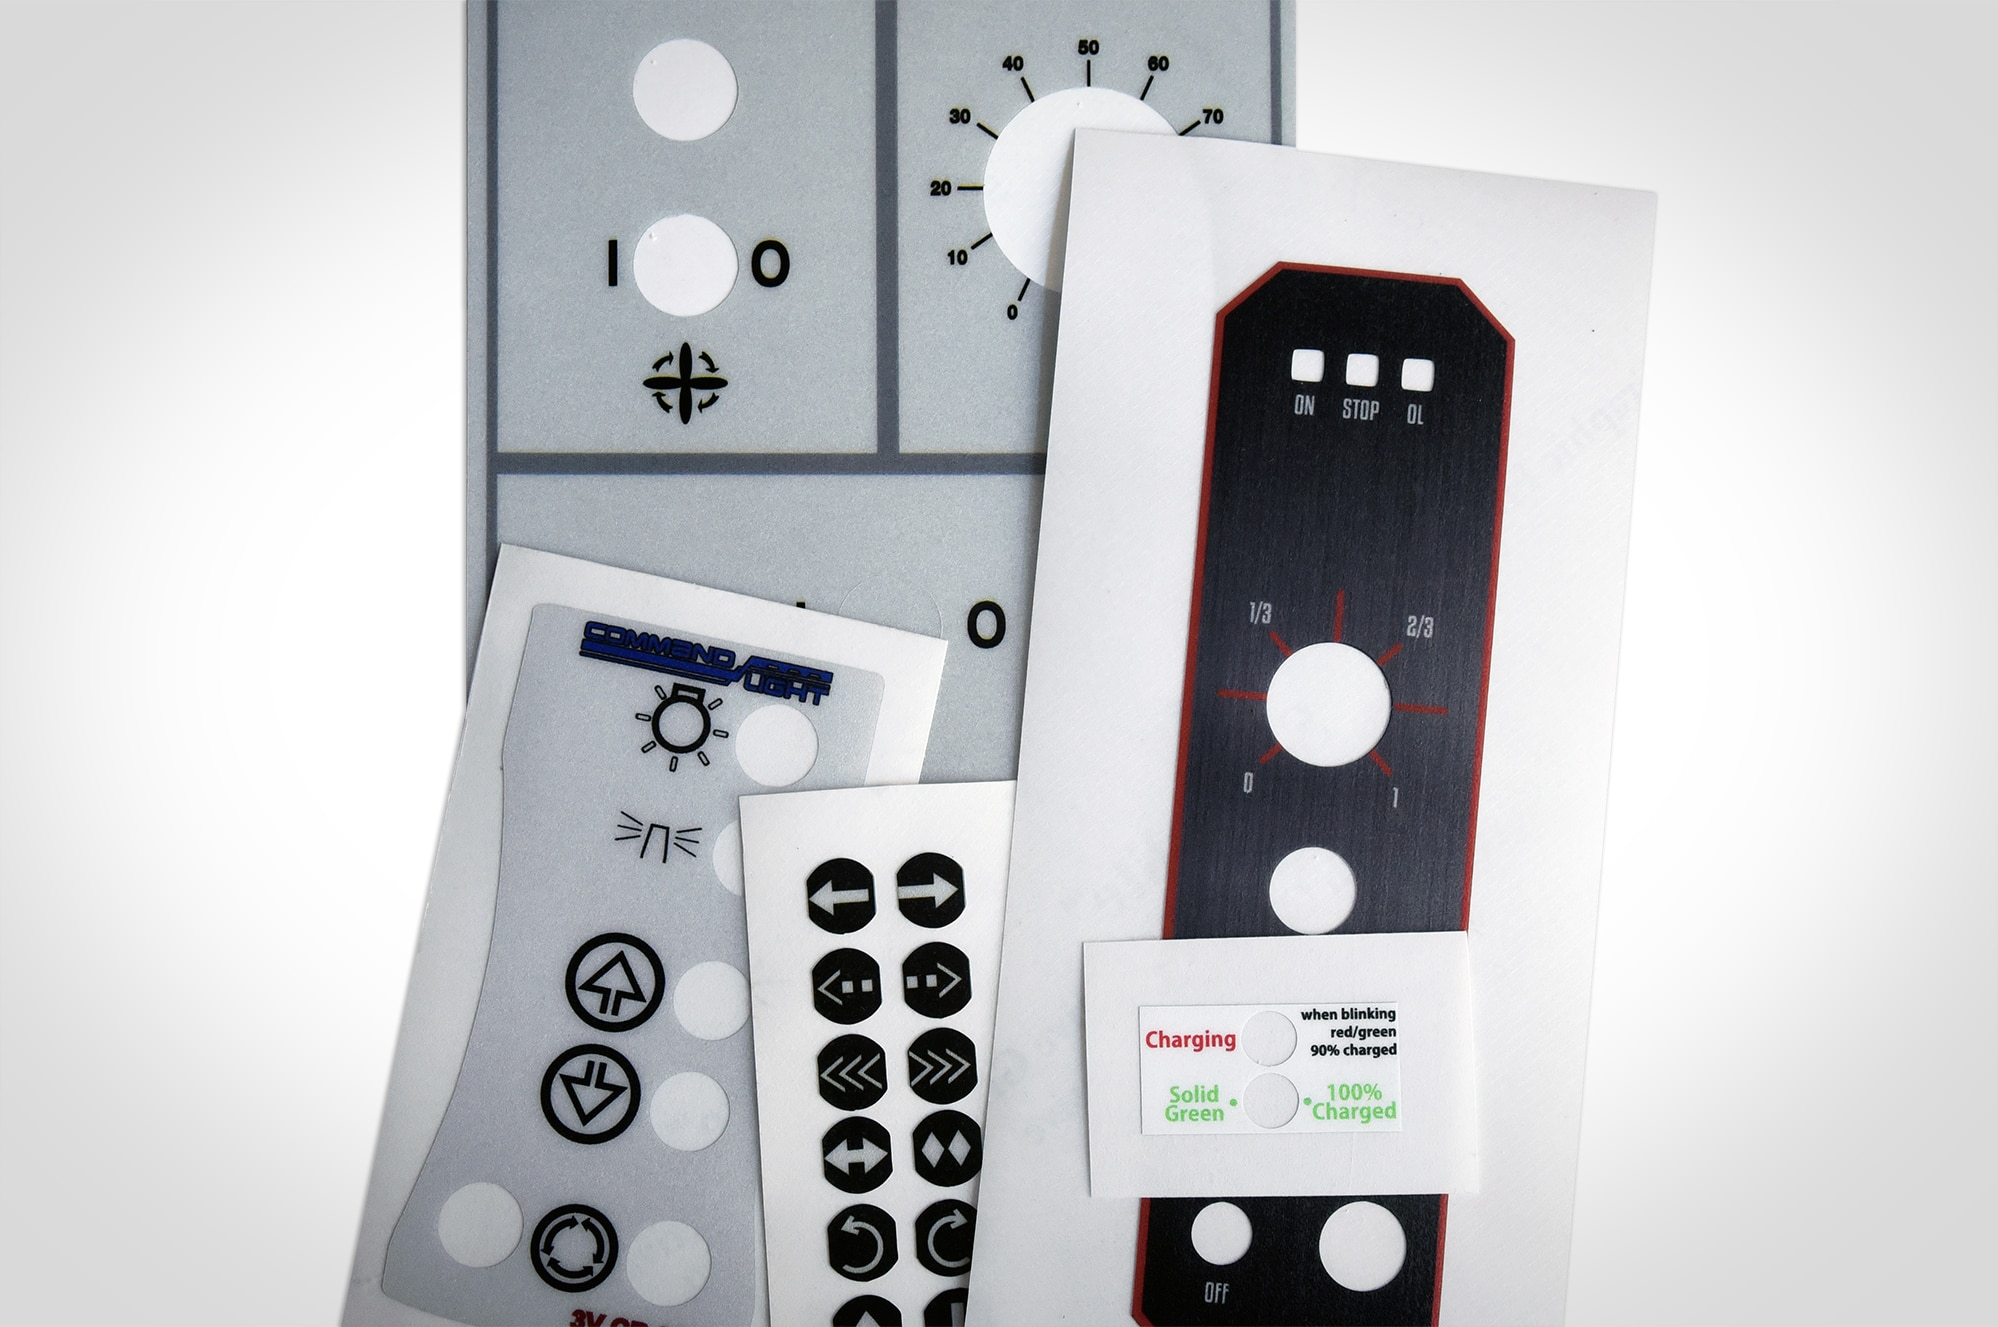 It is a graphic of Clever Industrial Control Panel Label